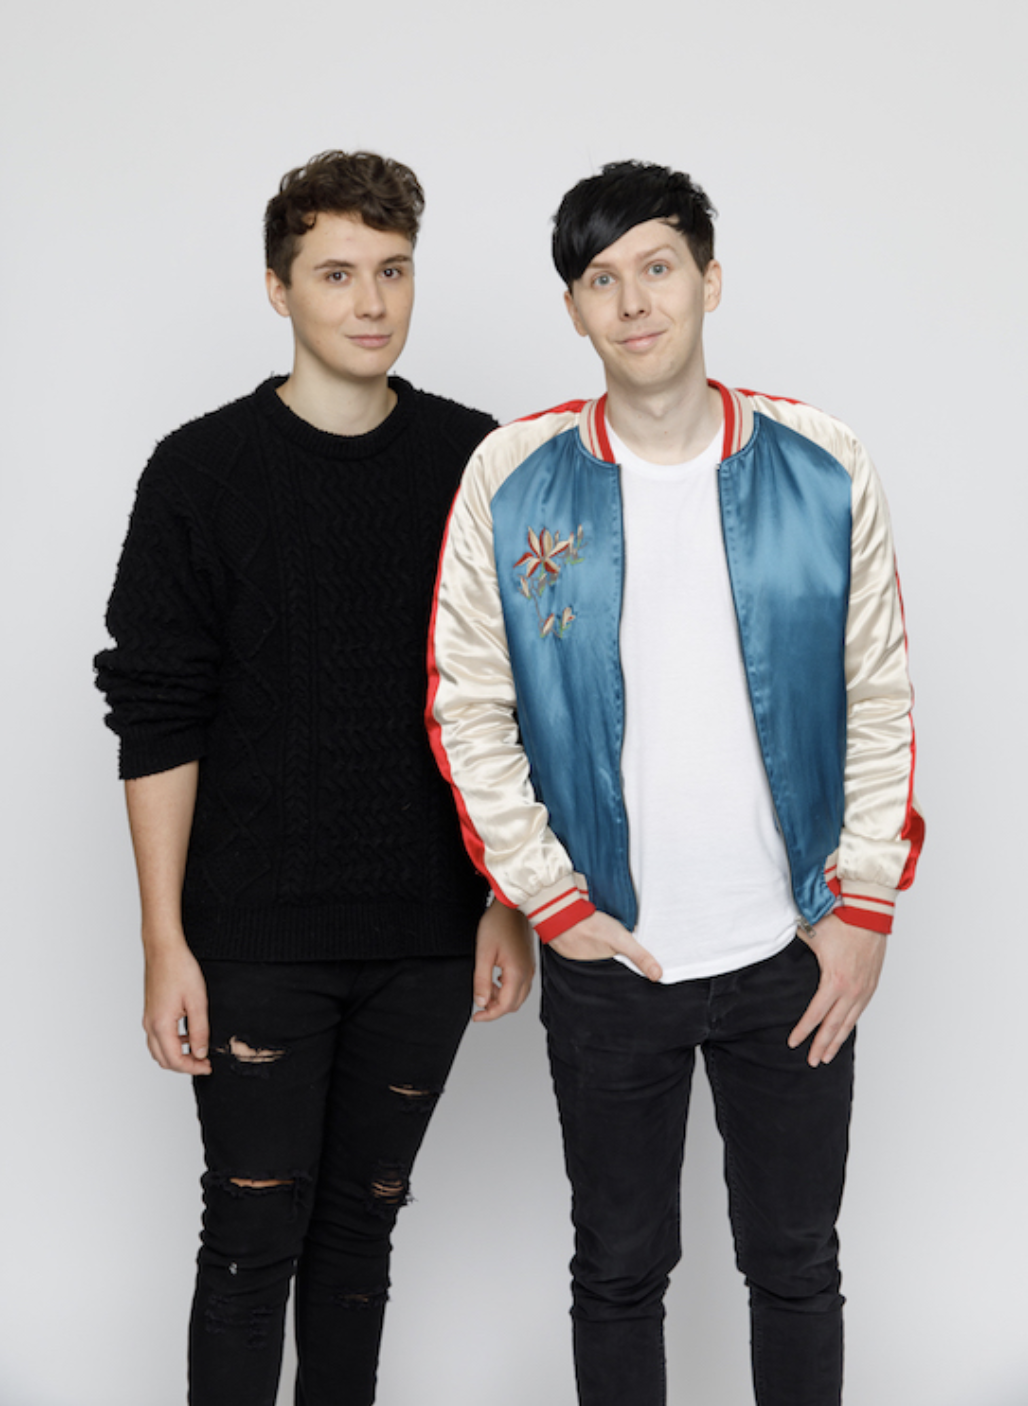 Dan and Phil | Youtube Rewind 2017 | it was a disaster | they had 3 seconds | and Dan was credited as danisnotonfire | #norespect